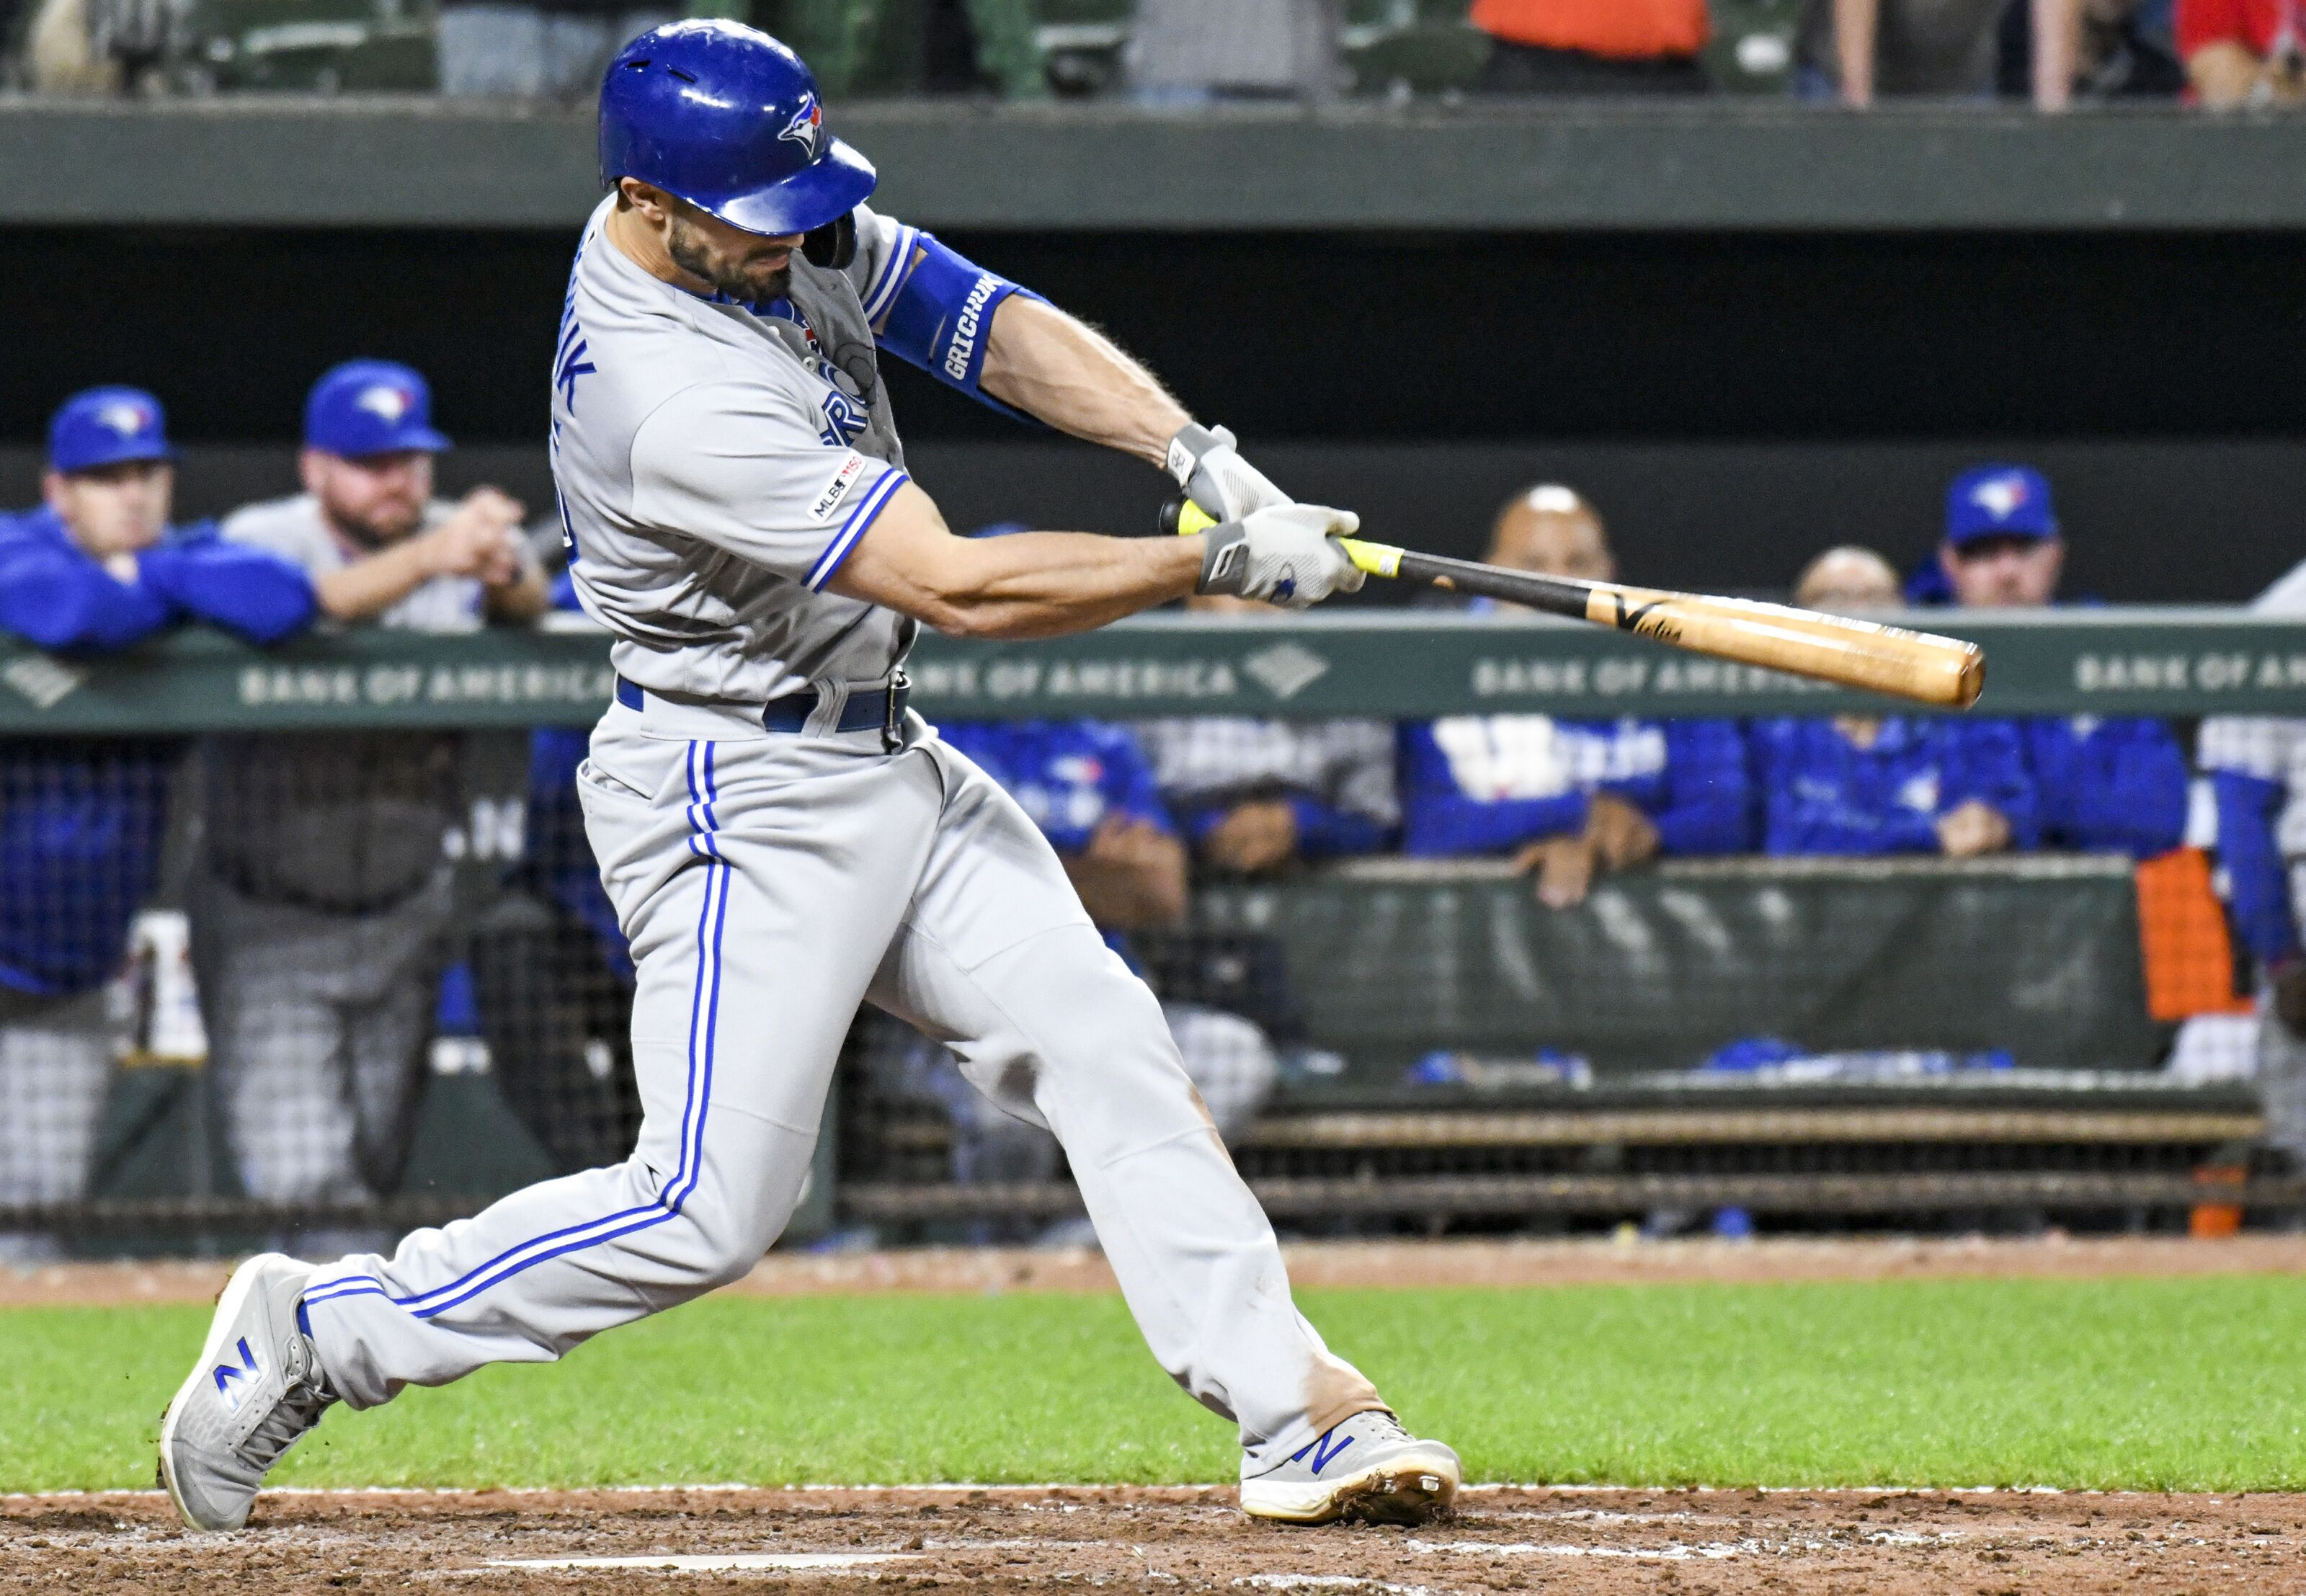 Toronto Blue Jays: Can Randal Grichuk bounce back?